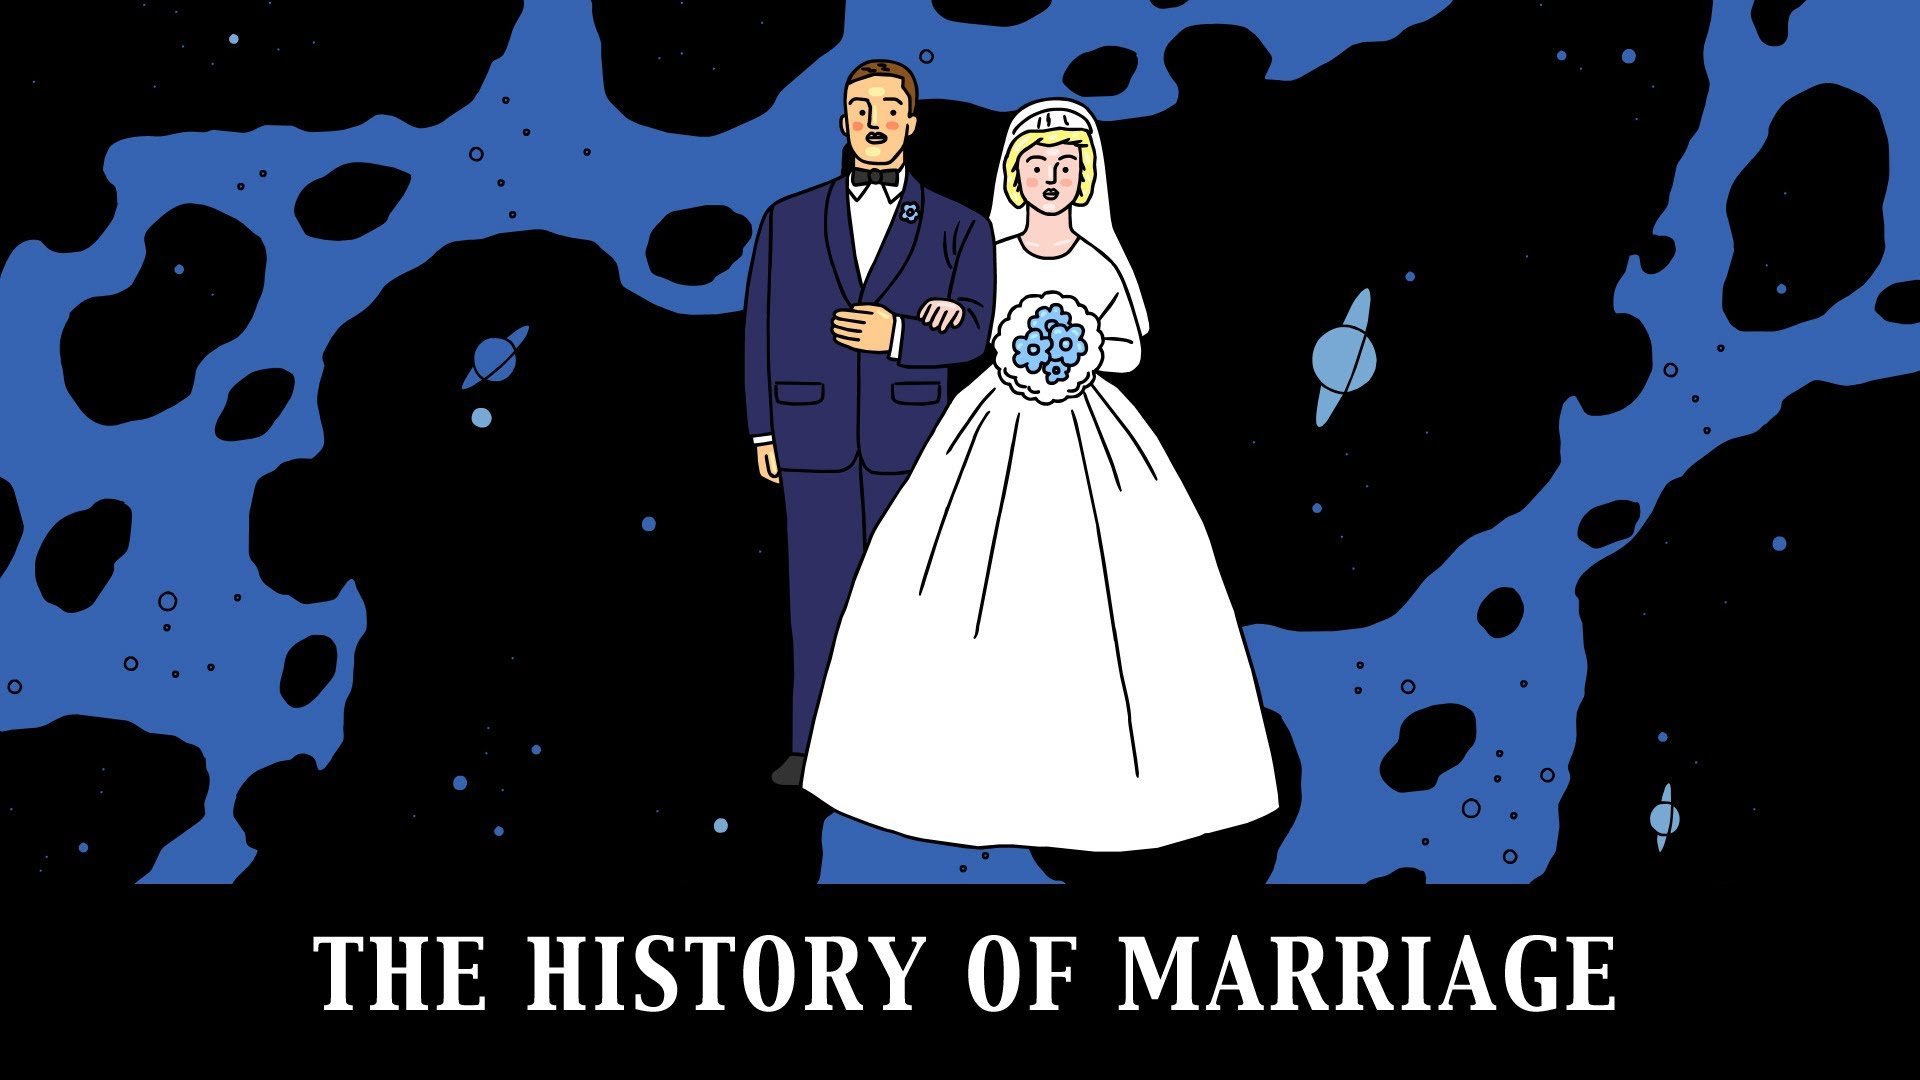 「婚姻的歷史」- The History of Marriage